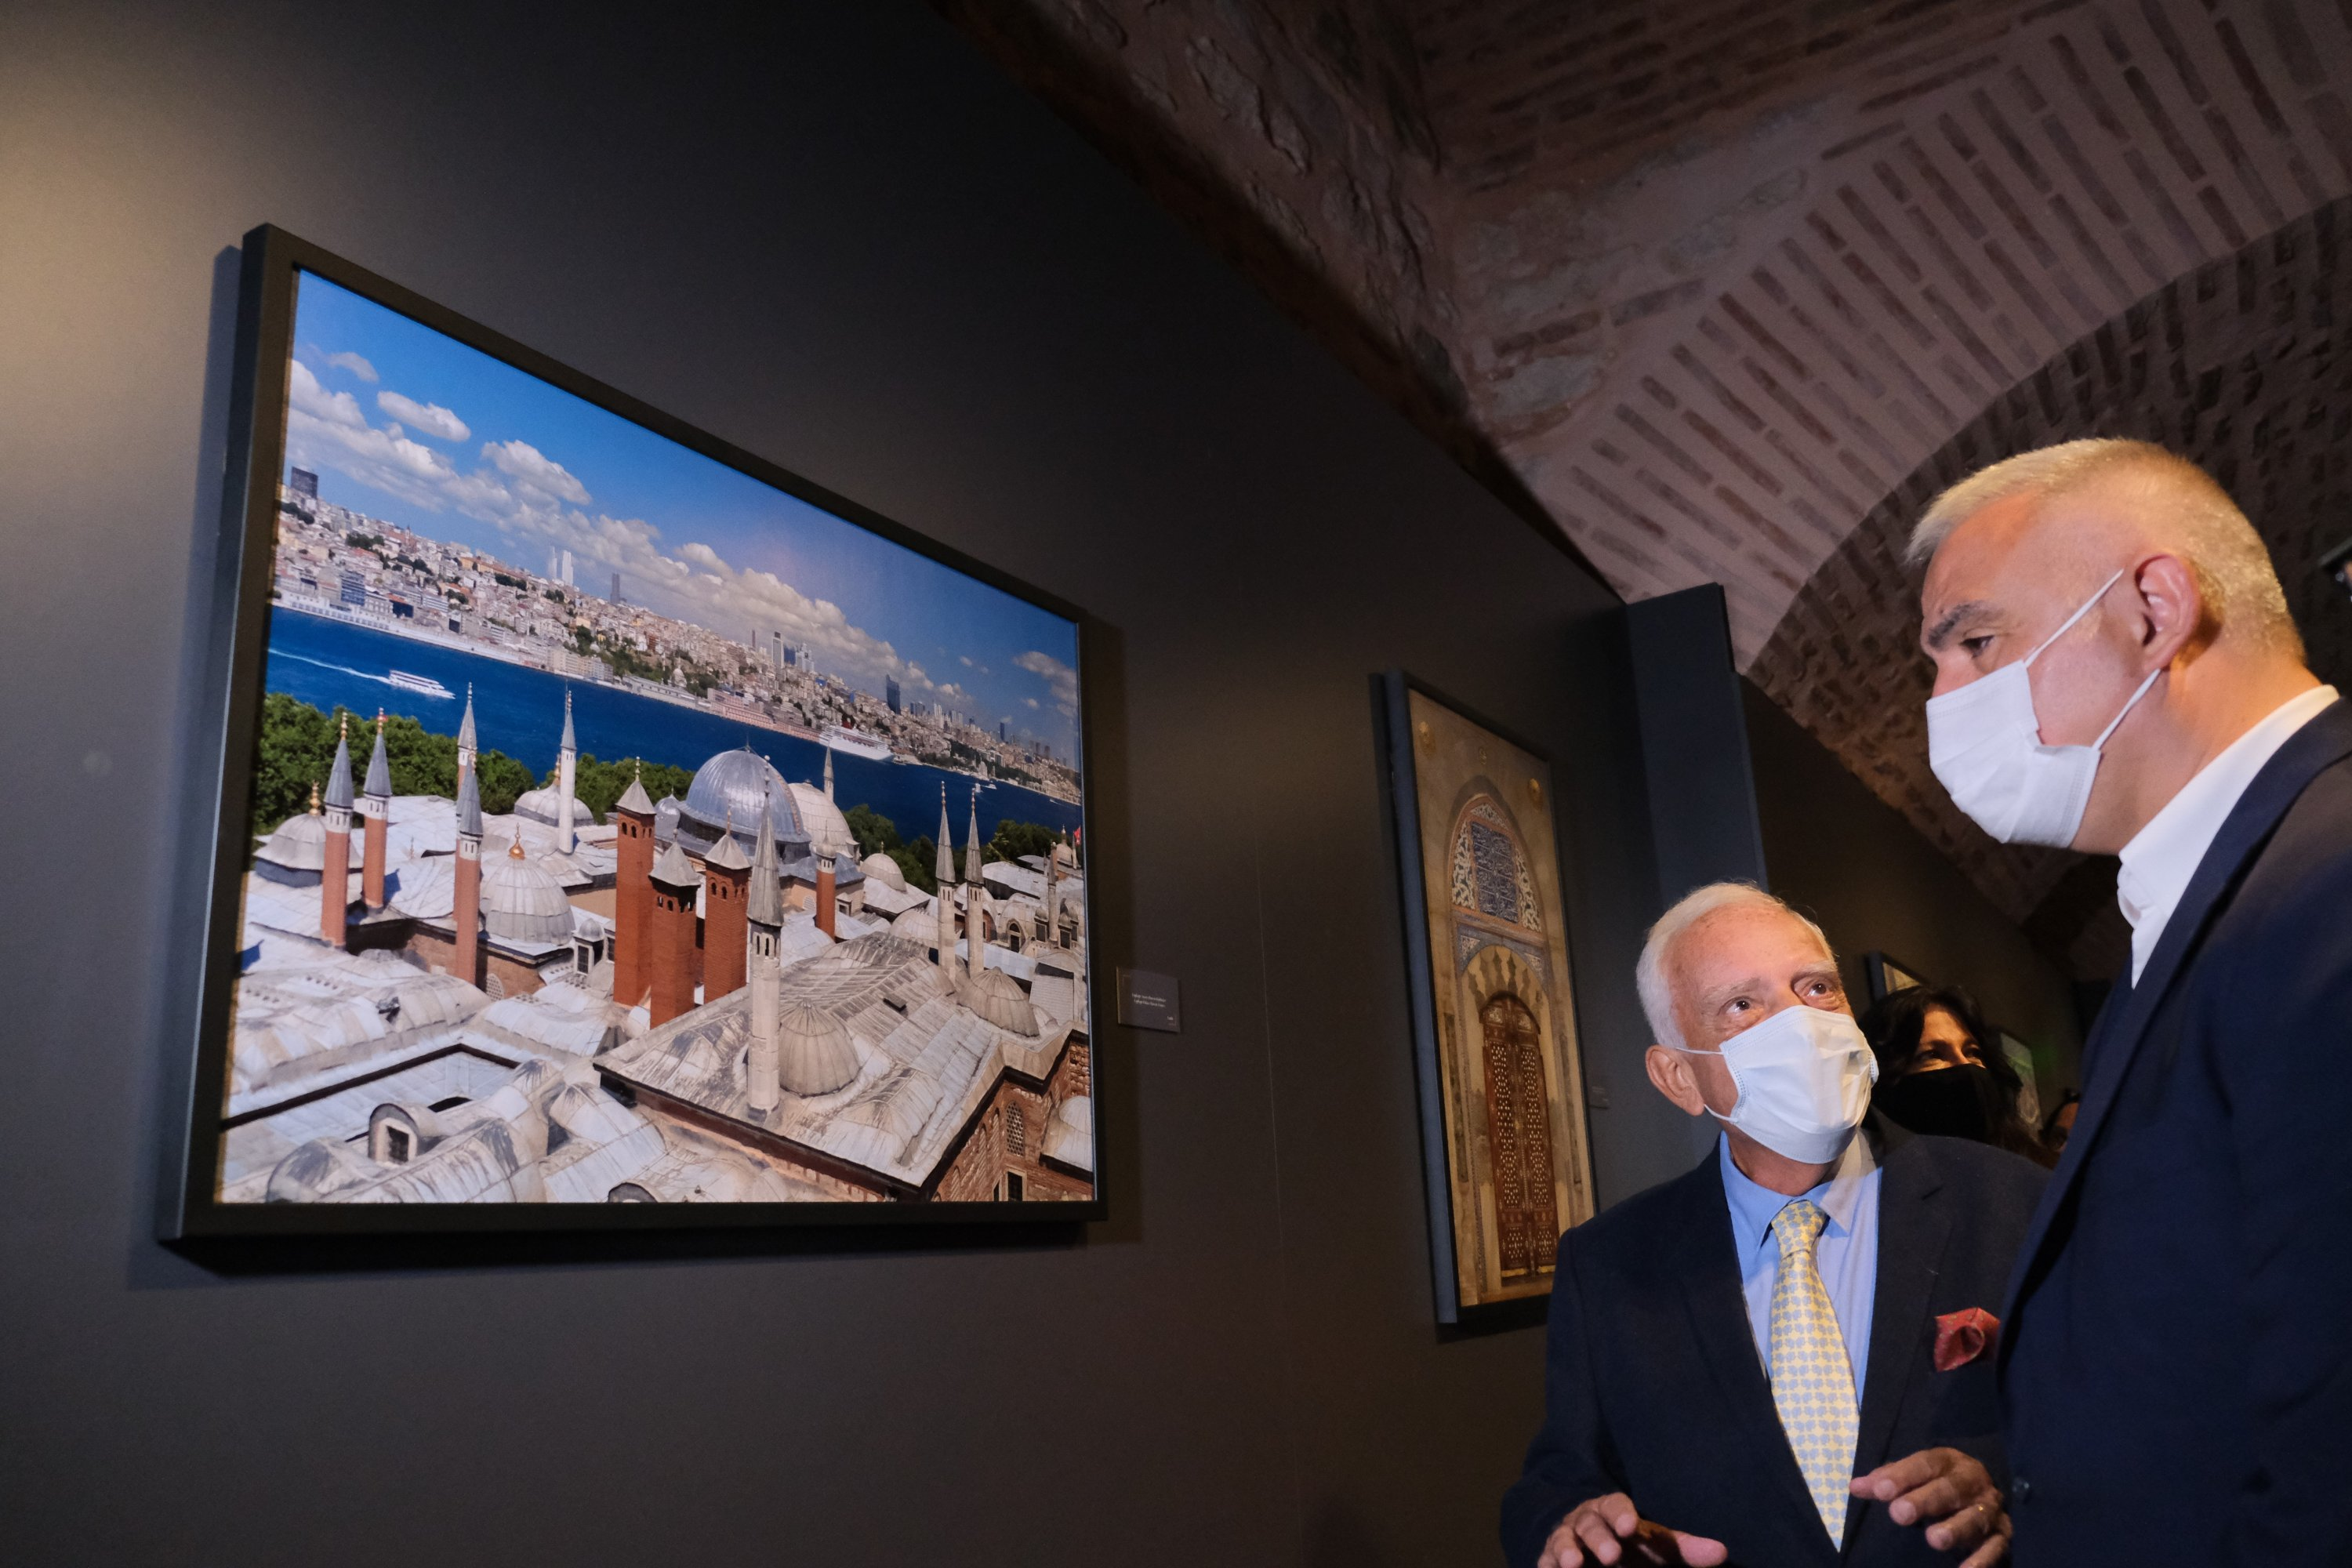 """Izzet Keribar (L) and Minister of Culture and Tourism Mehmet Nuri Ersoy examine a photo of Hagia Sophia Grand Mosque by Izzet Keribar in the exhibition """"Heritage: Ottoman Architecture and Tile Art in Istanbul,"""" Museum of Turkish and Islamic Arts, Istanbul, Turkey, Oct. 2, 2021. (AA Photo)"""